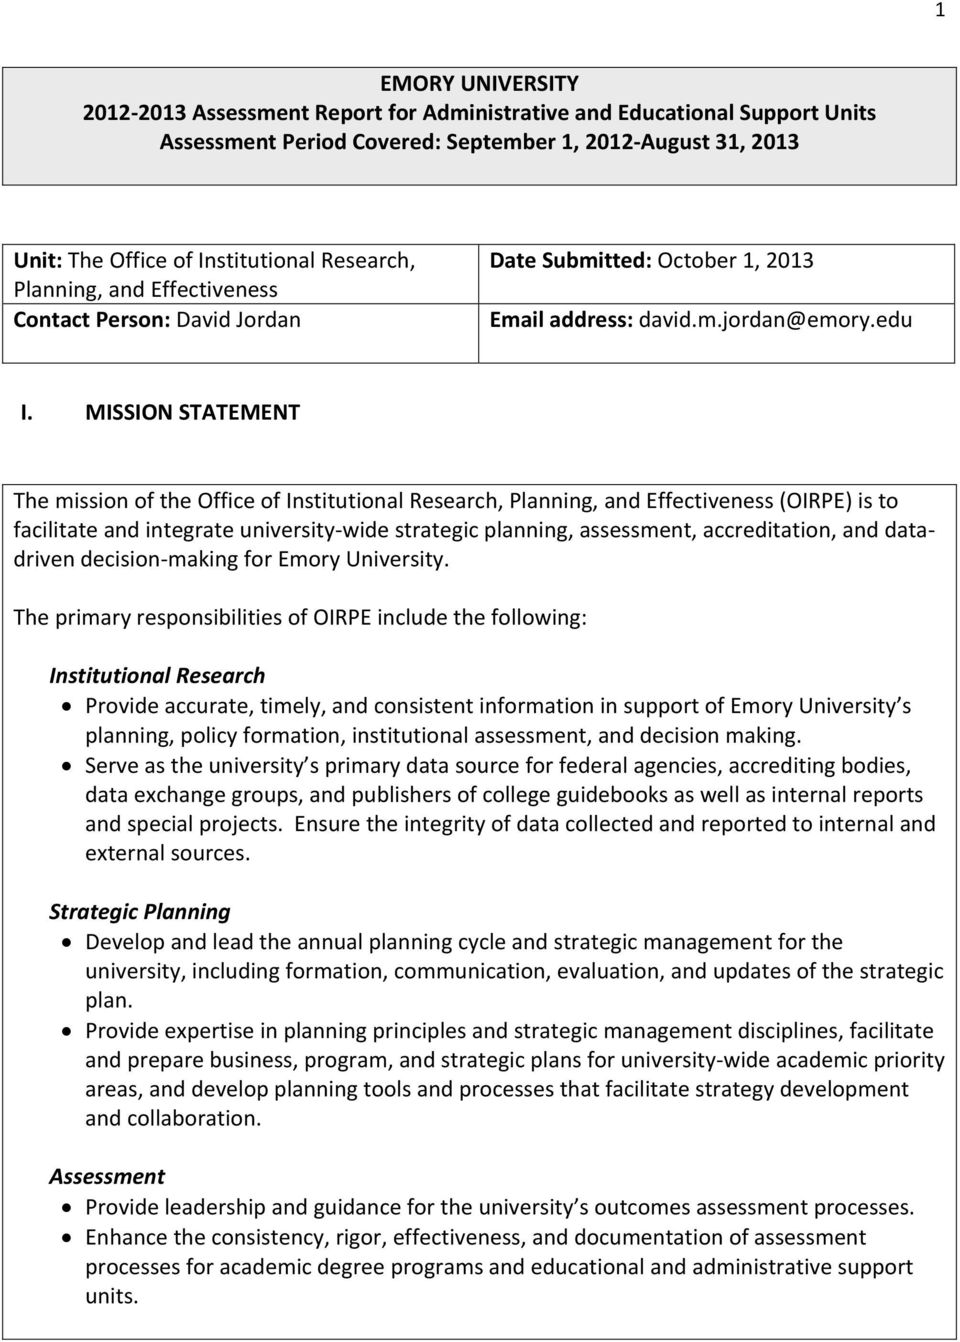 MISSION STATEMENT The mission of the Office of Institutional Research, Planning, and Effectiveness (OIRPE) is to facilitate and integrate university wide strategic planning, assessment,